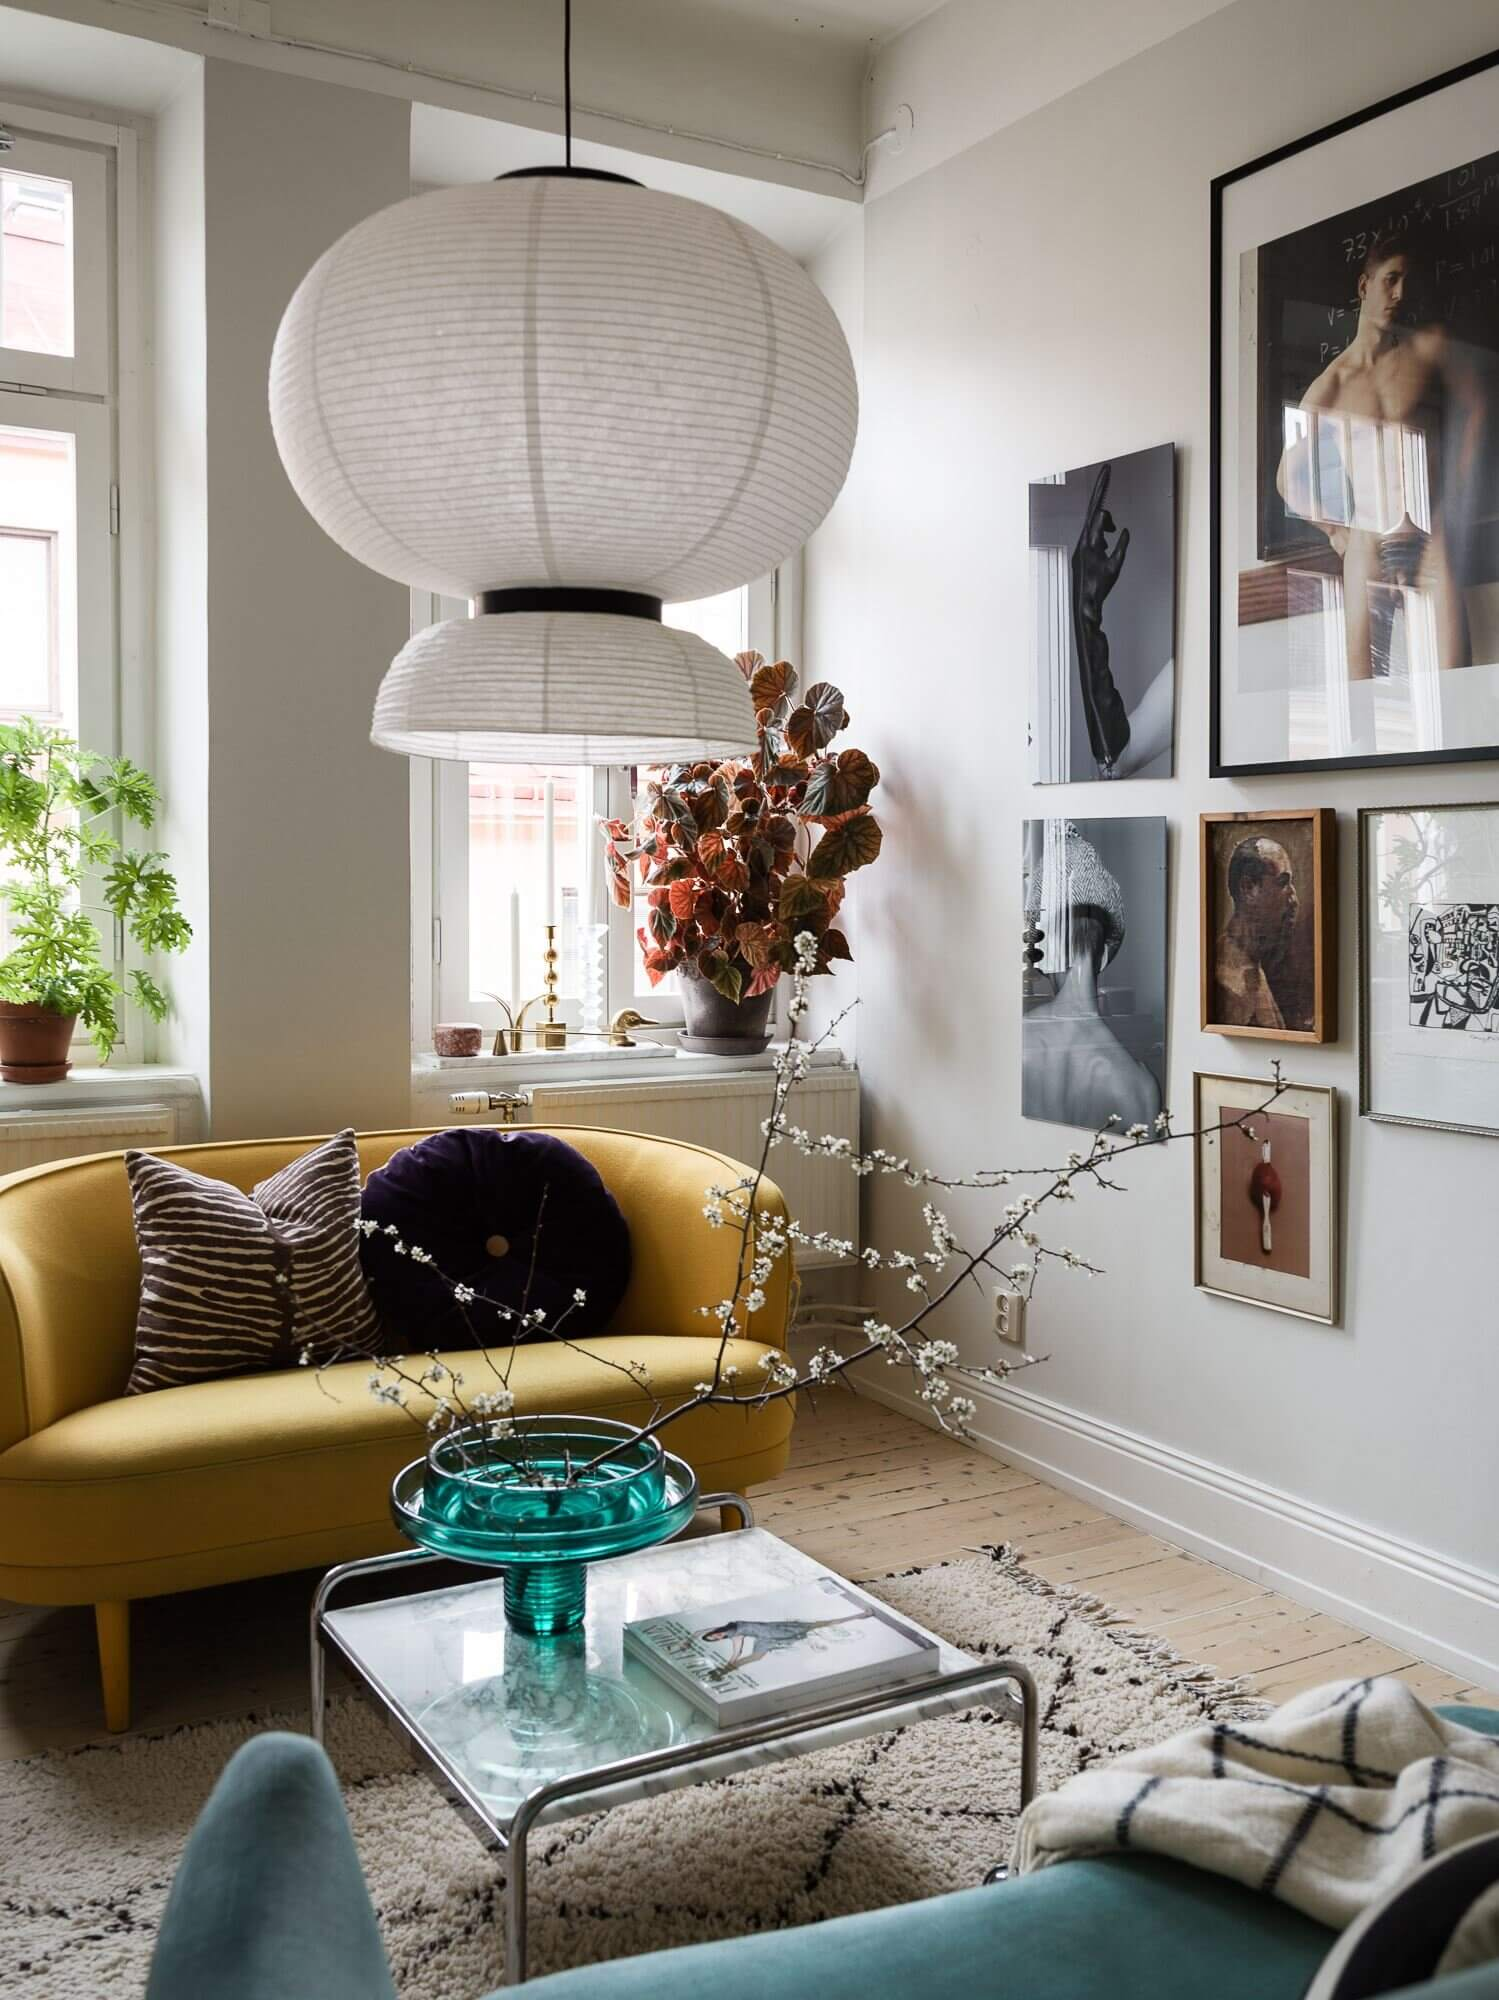 A Small Scandi Apartment with an Art-Filled Living Room